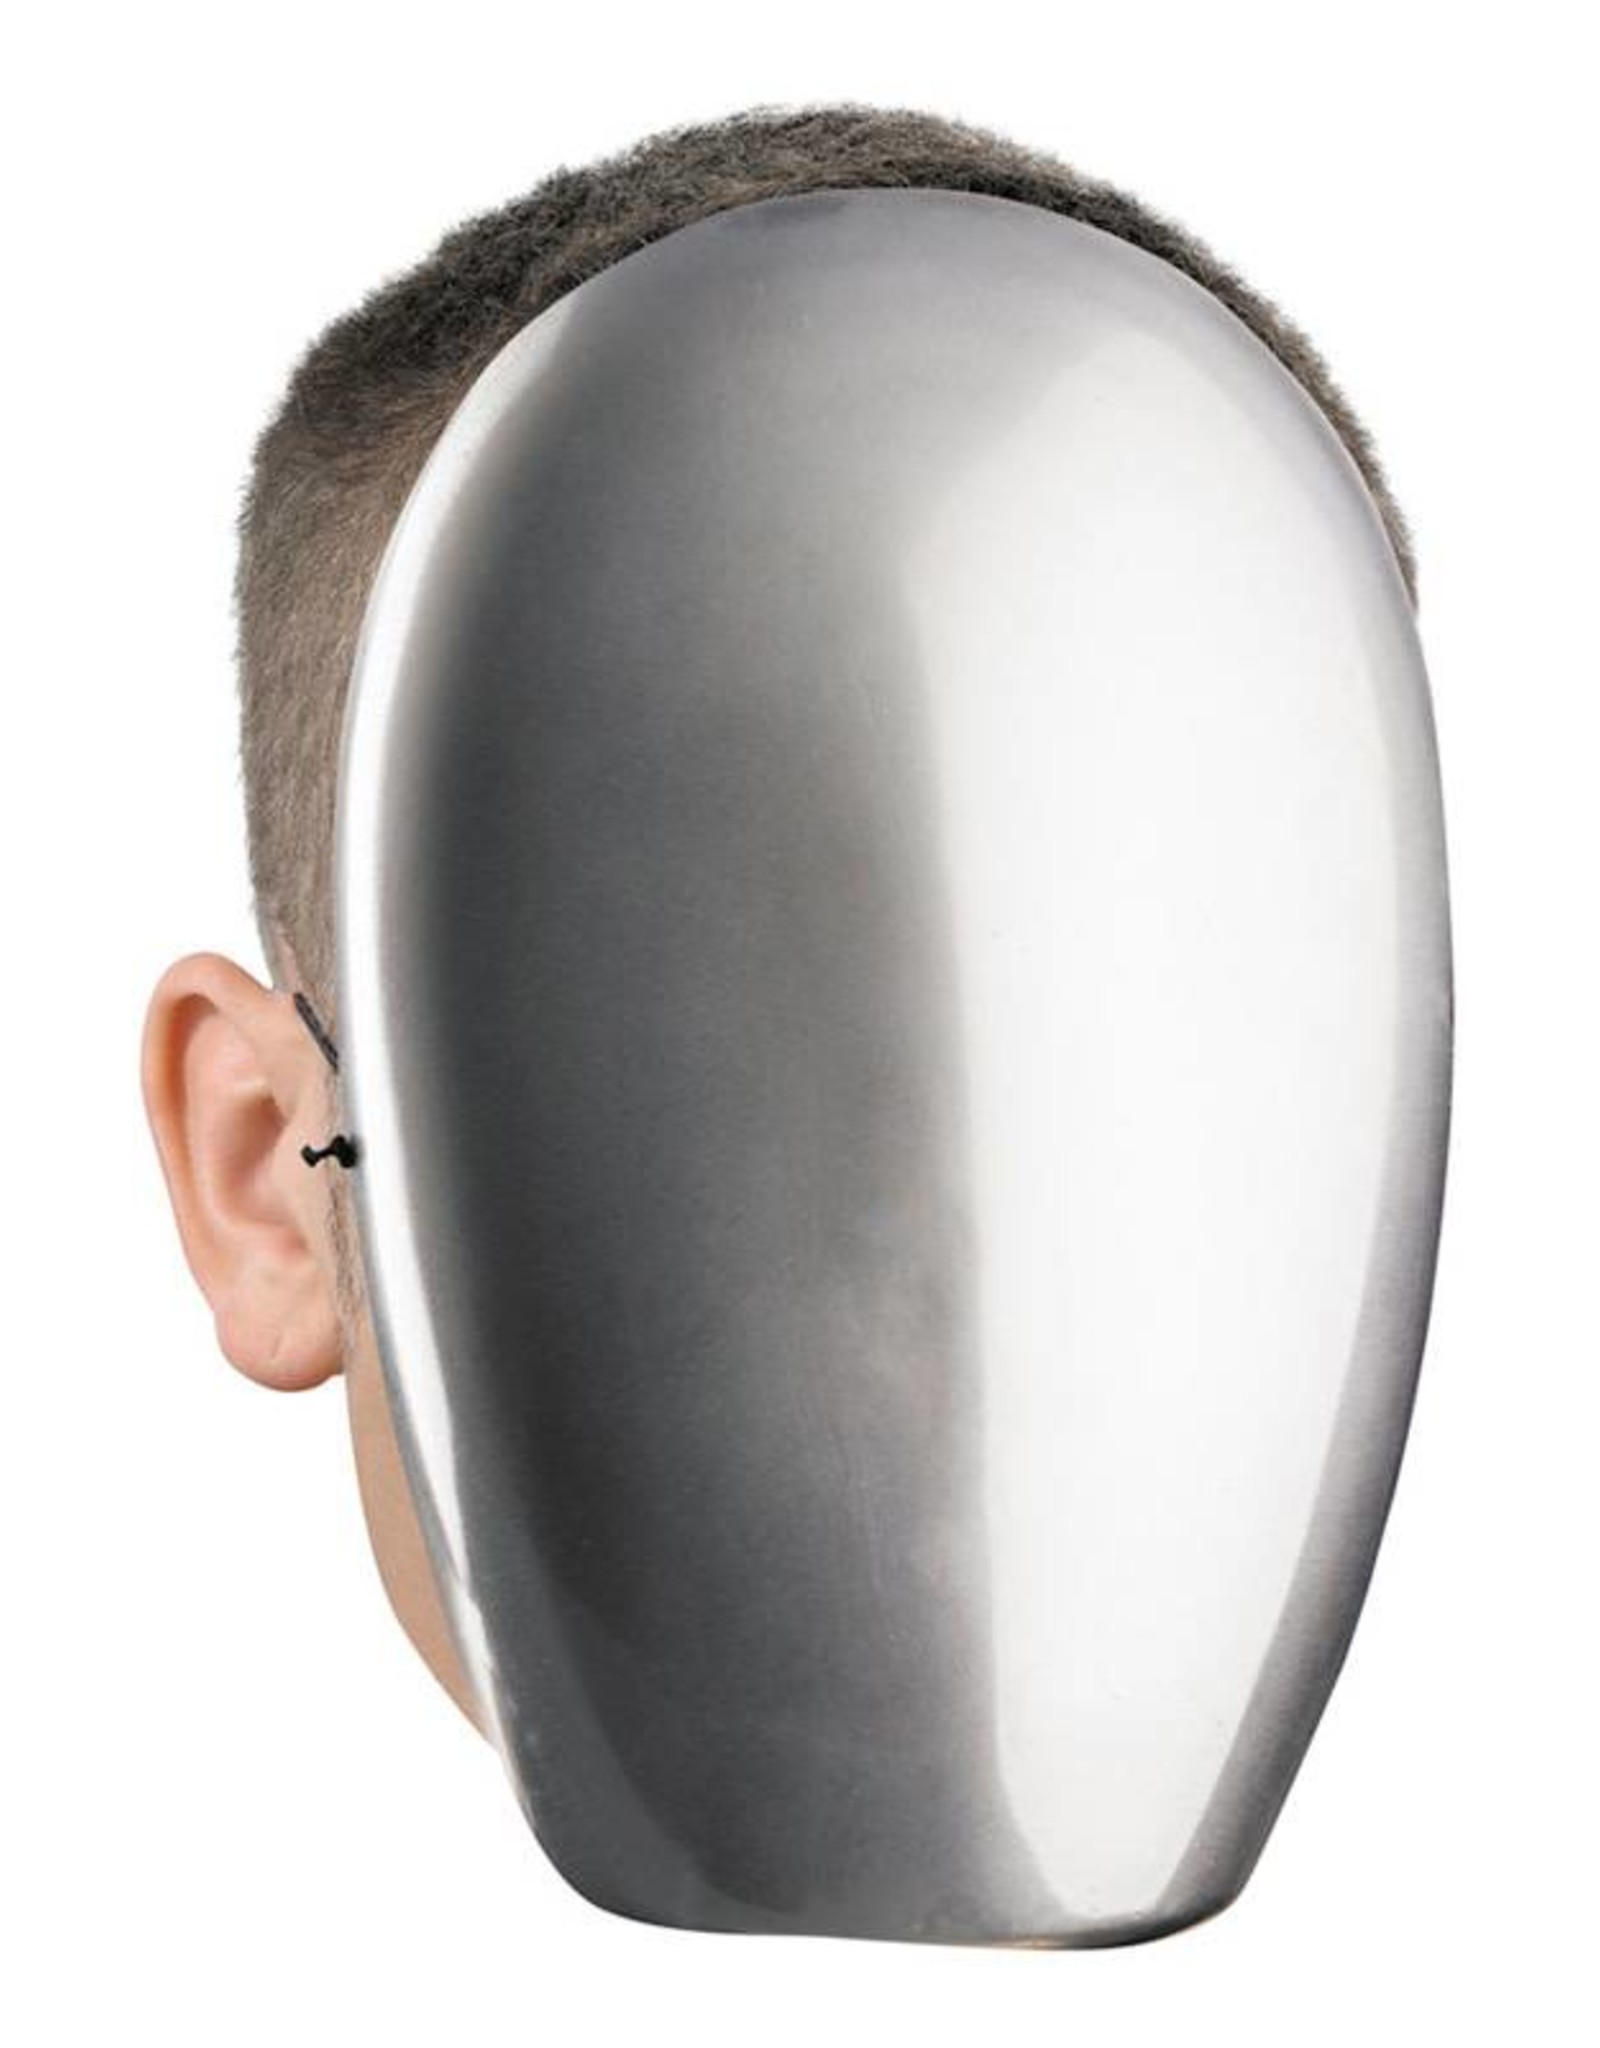 Disguise No Face Chrome Mask